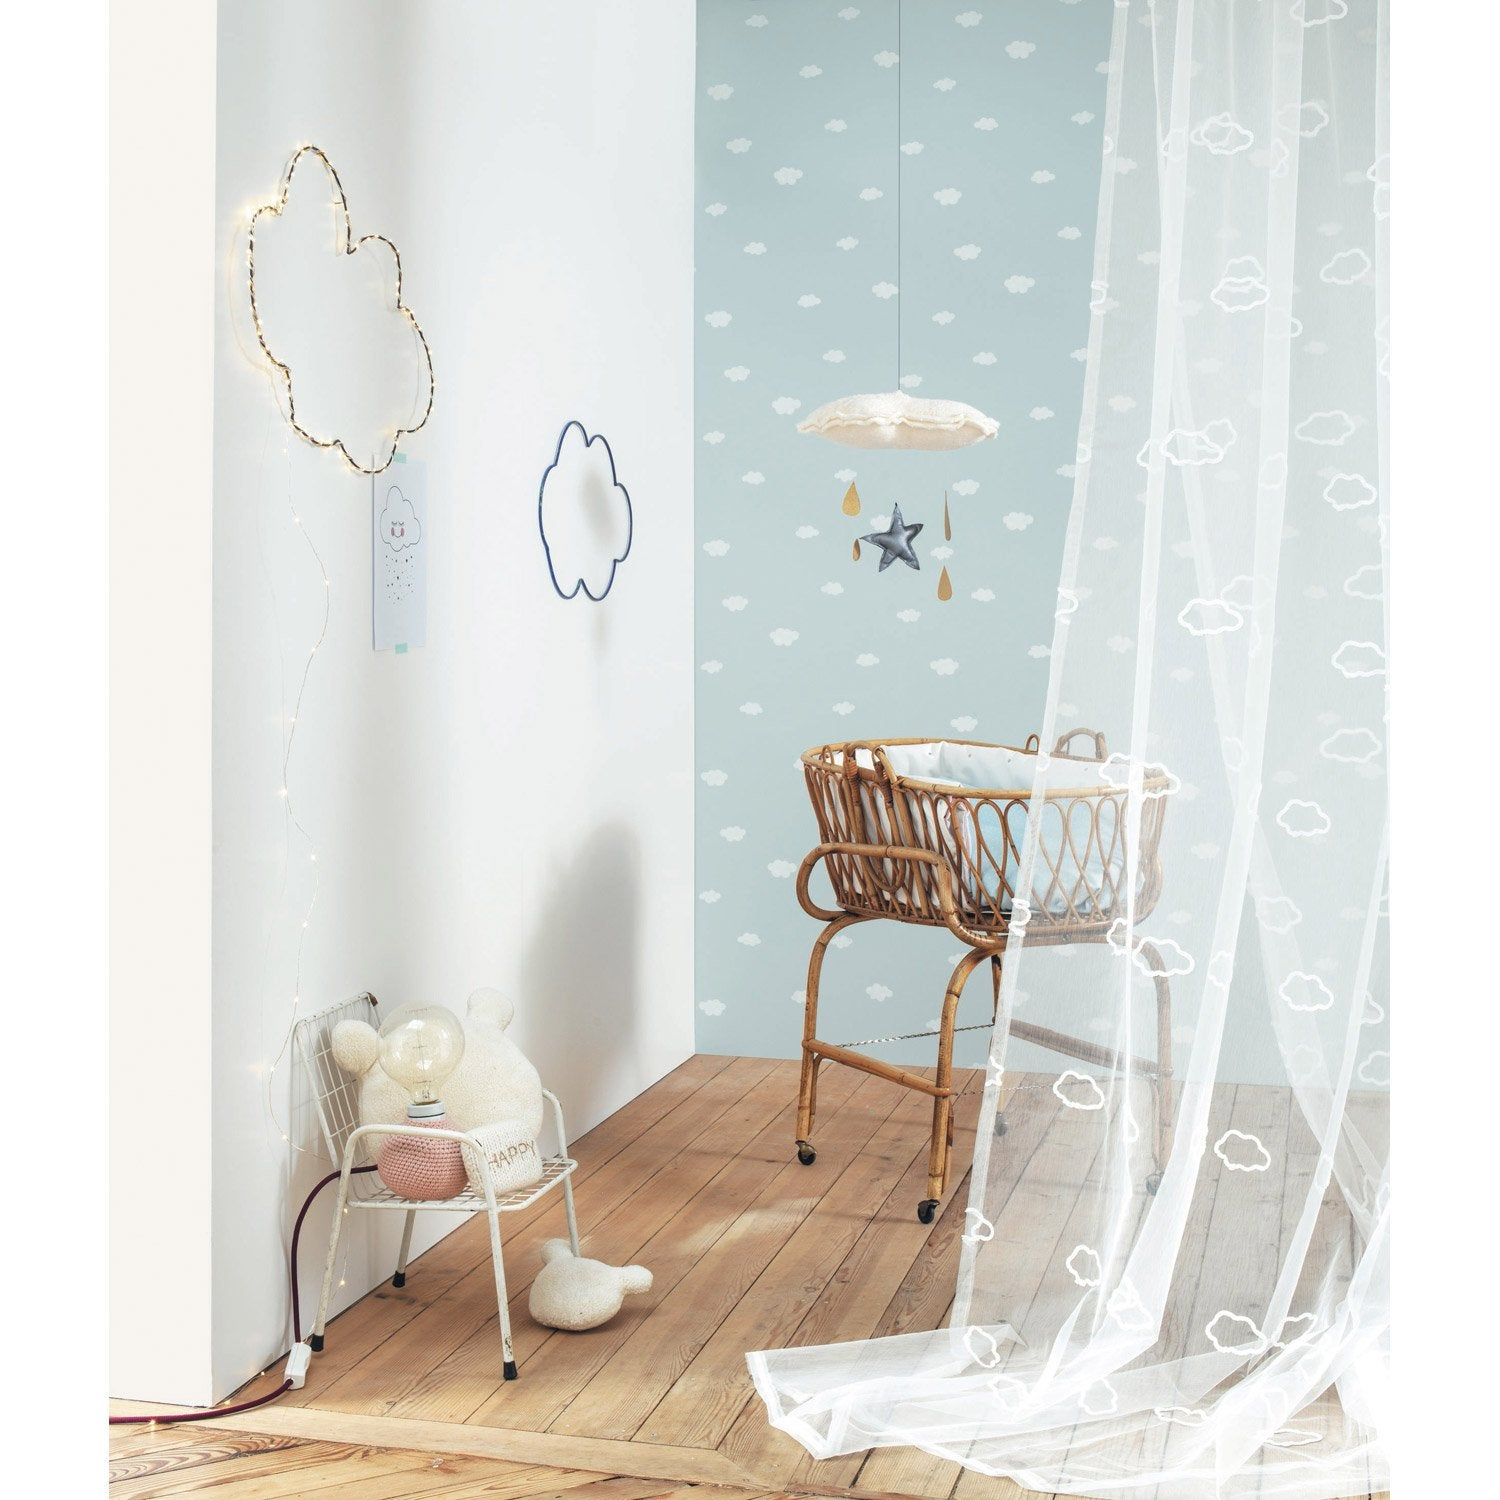 Papier peint nuages bleus intiss little world leroy merlin - Papier peint toilette leroy merlin ...